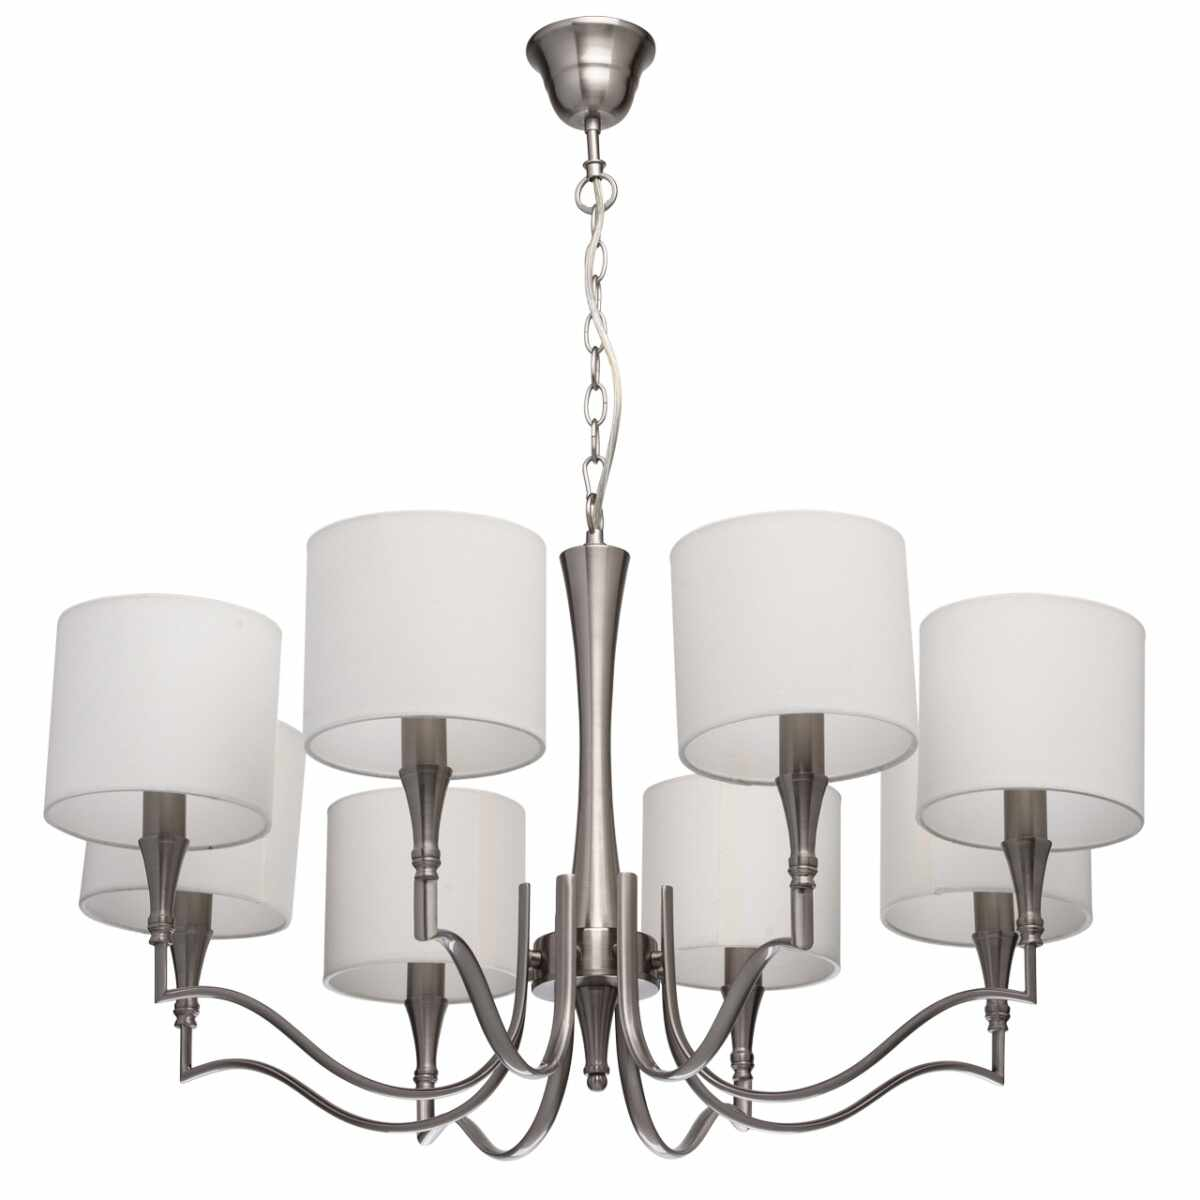 Lustra MW-Light Elegance 667010908